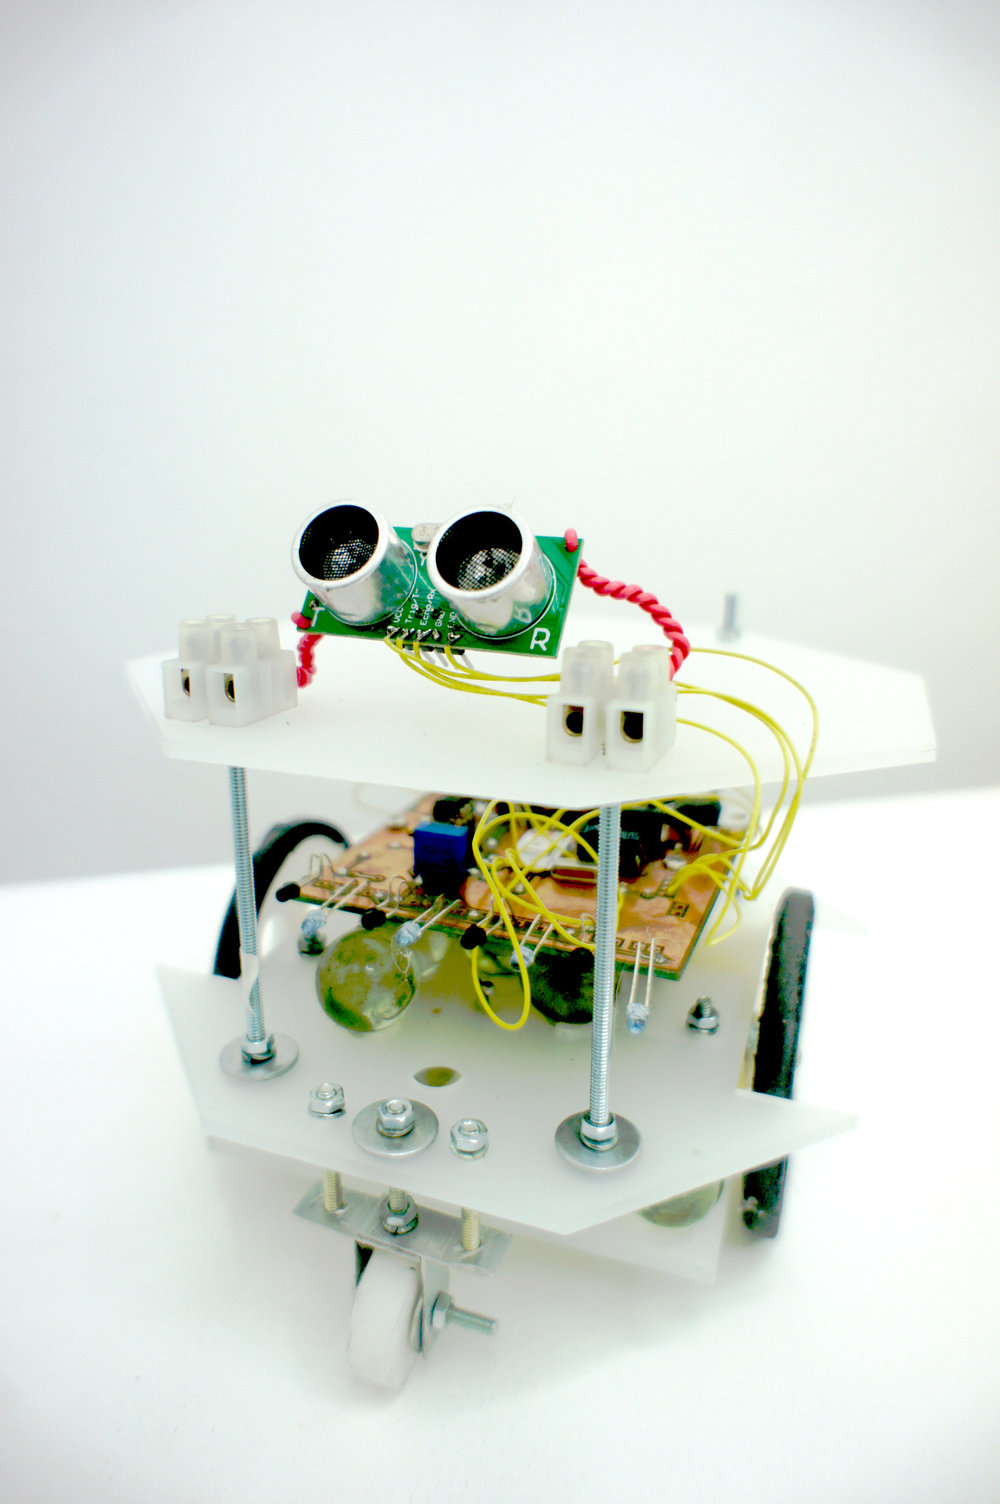 IAN JAUCIAN   Viral Automata (Robot) , 2017 digital codes, plastic, metal, rubber, glass, electronics, light 16 x 16 x 16 cm